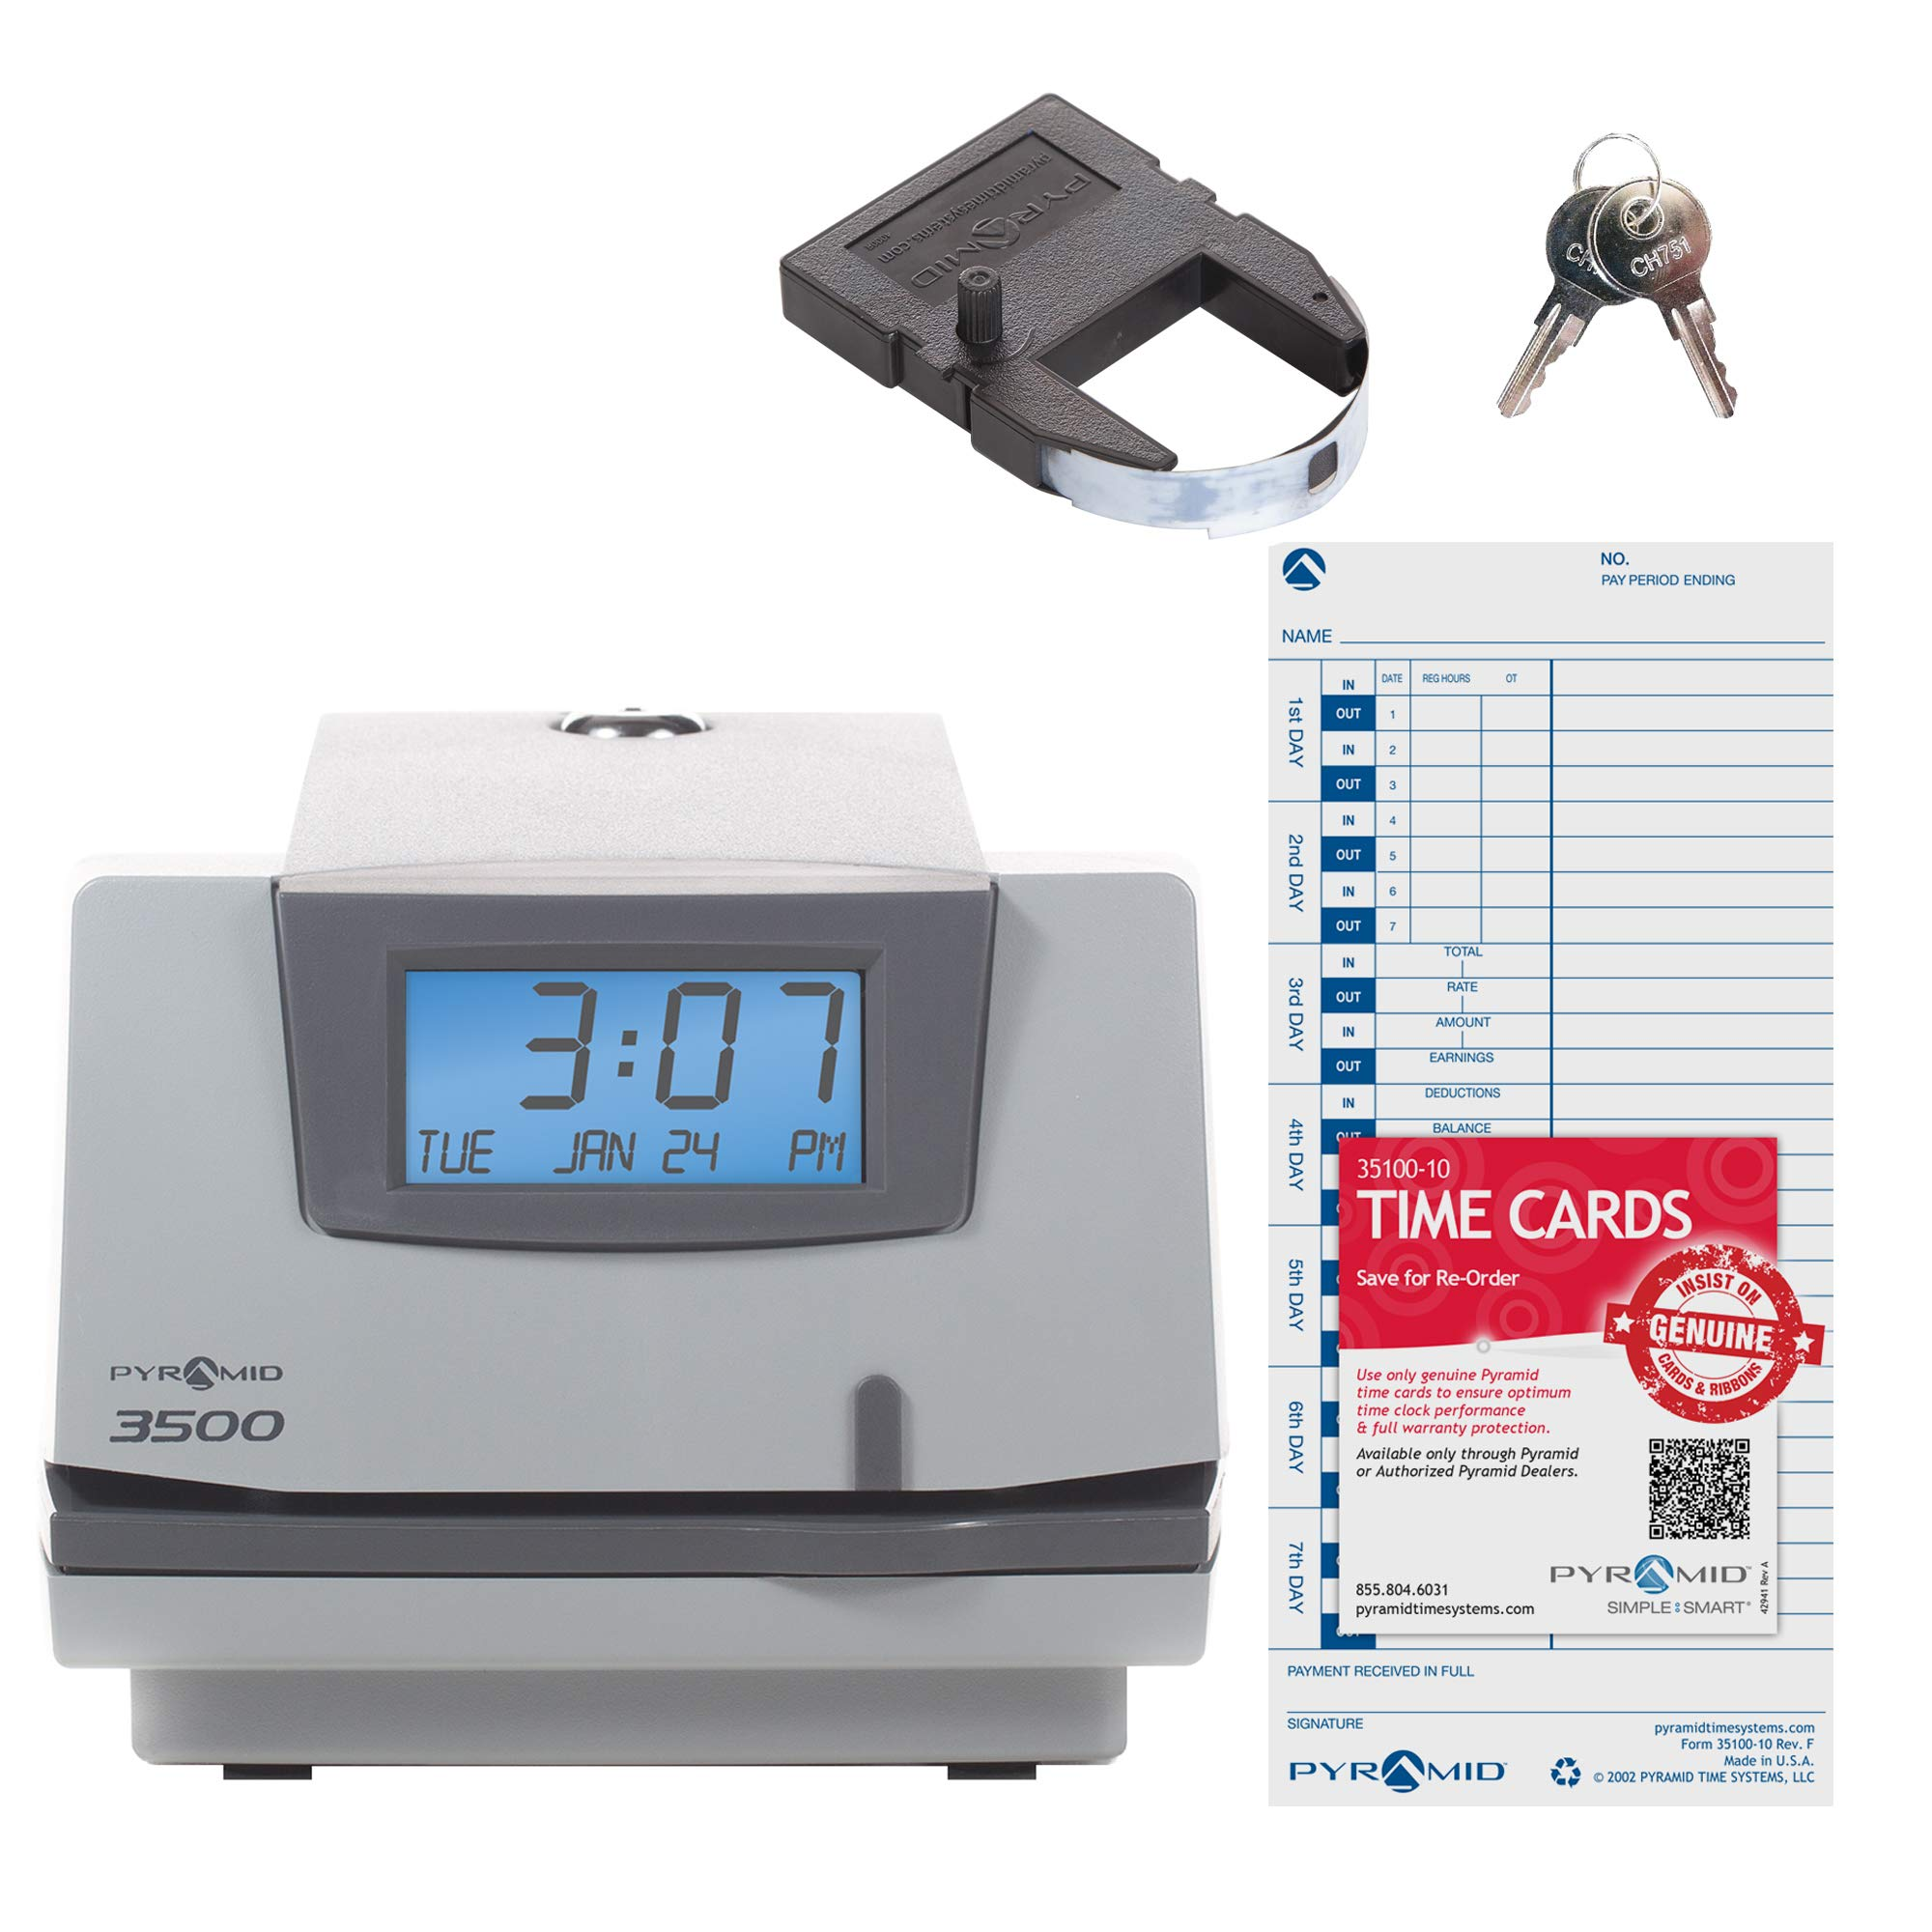 Pyramid 3500 Multi-Purpose Time Clock and Document Stamp - Made in the USA by Pyramid Time Systems